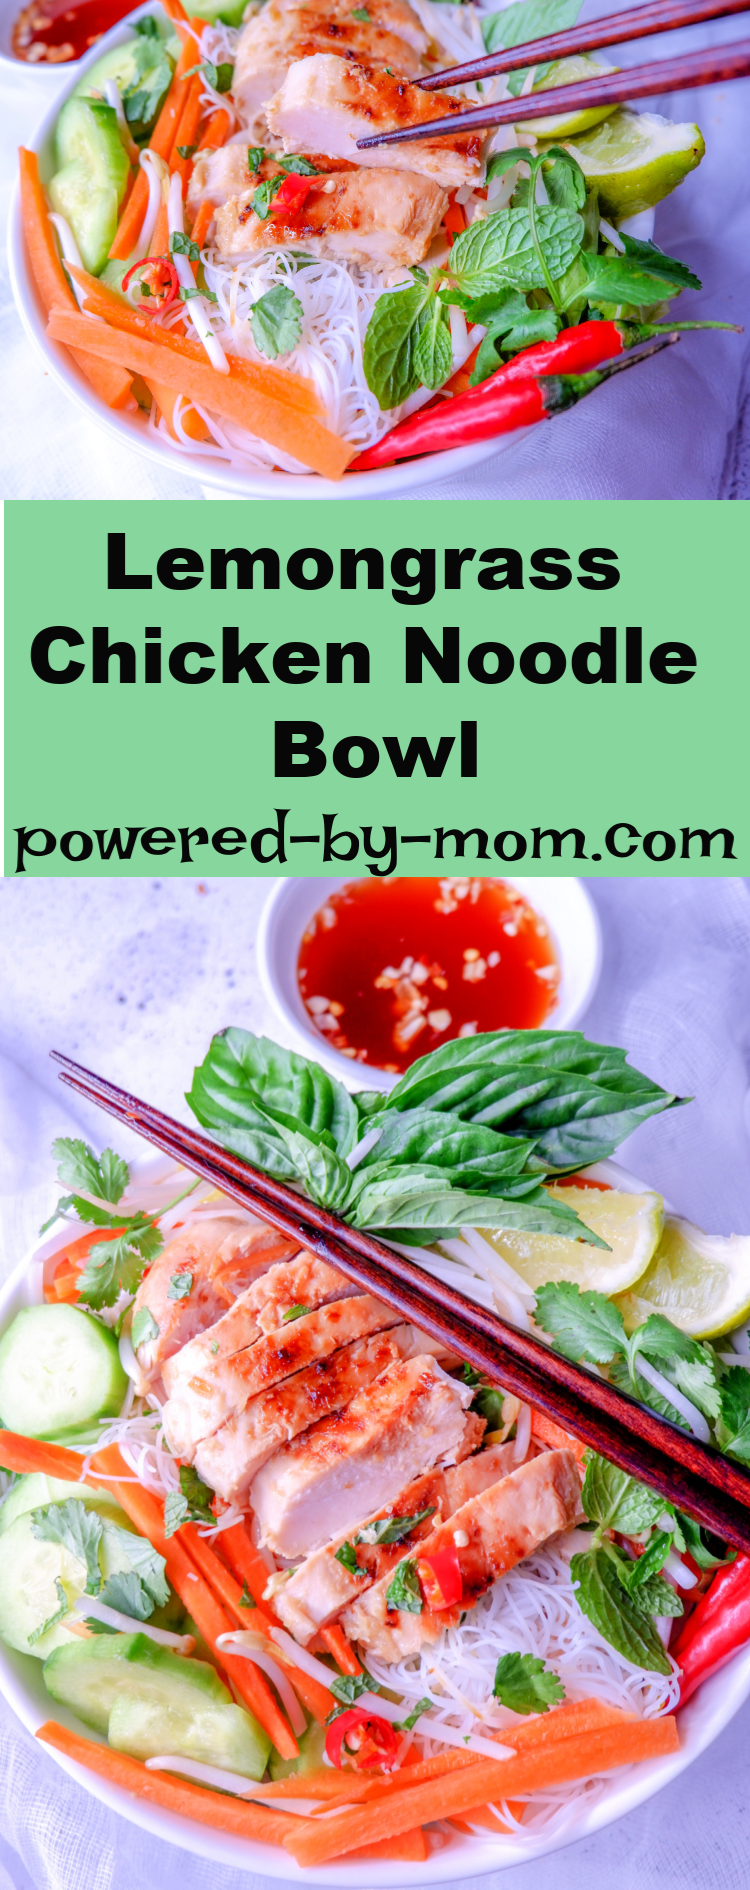 Serve up this healthy noodle bowl recipe with tender chicken, veggies and flavors of lemongrass. The perfect recipe to make #mealprep #ricenoodlebowl #easy #lunch #lightmeal #Vietnamese #lunch #shredded #rotisserie